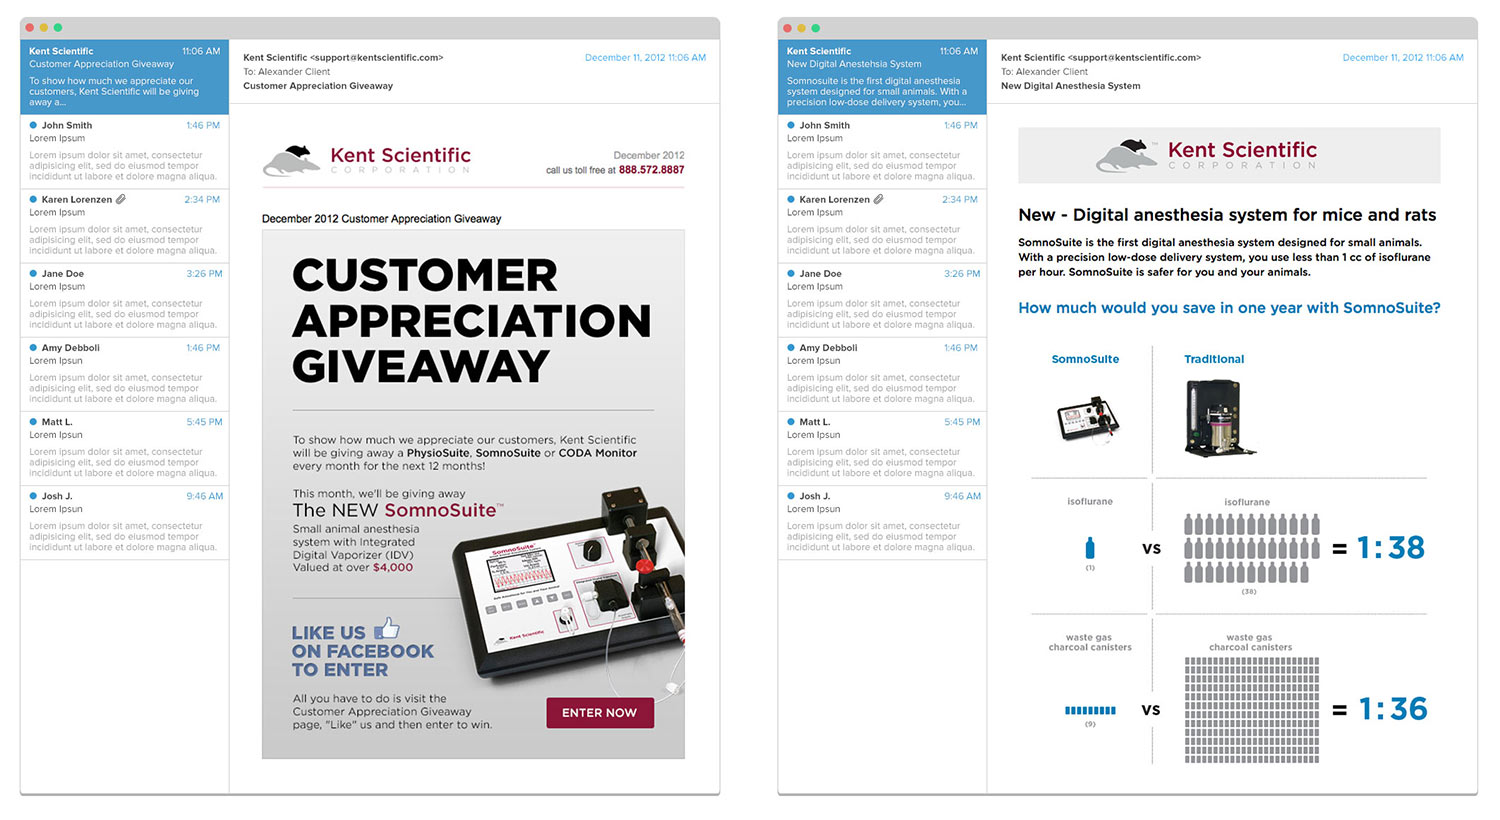 Email marketing for Kent Scientific